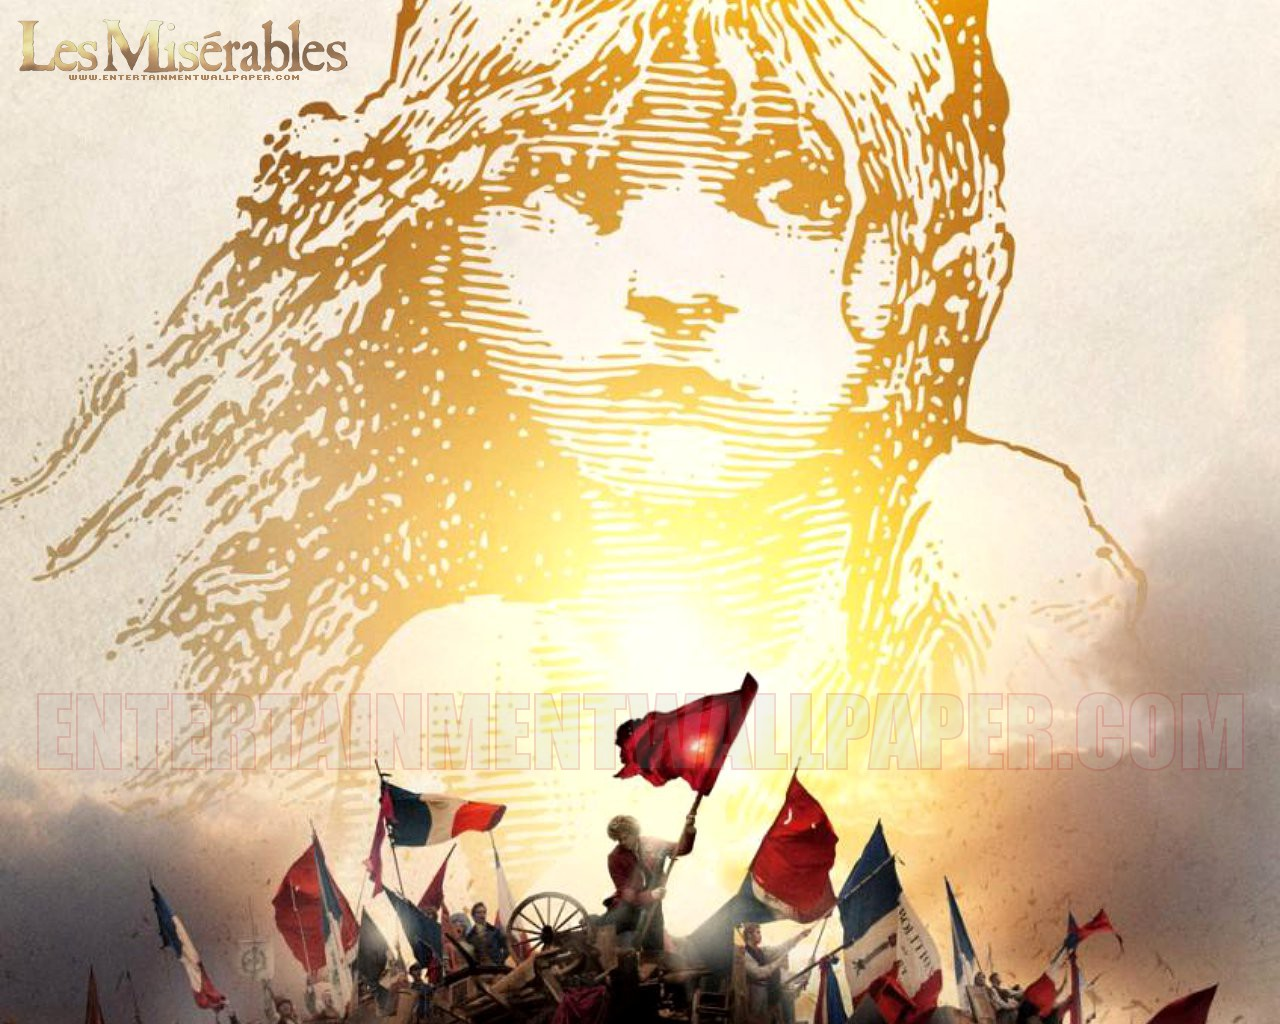 Les Miserables Wallpapers Les Miserables Do You Hear The People Sing 1280x1024 Download Hd Wallpaper Wallpapertip